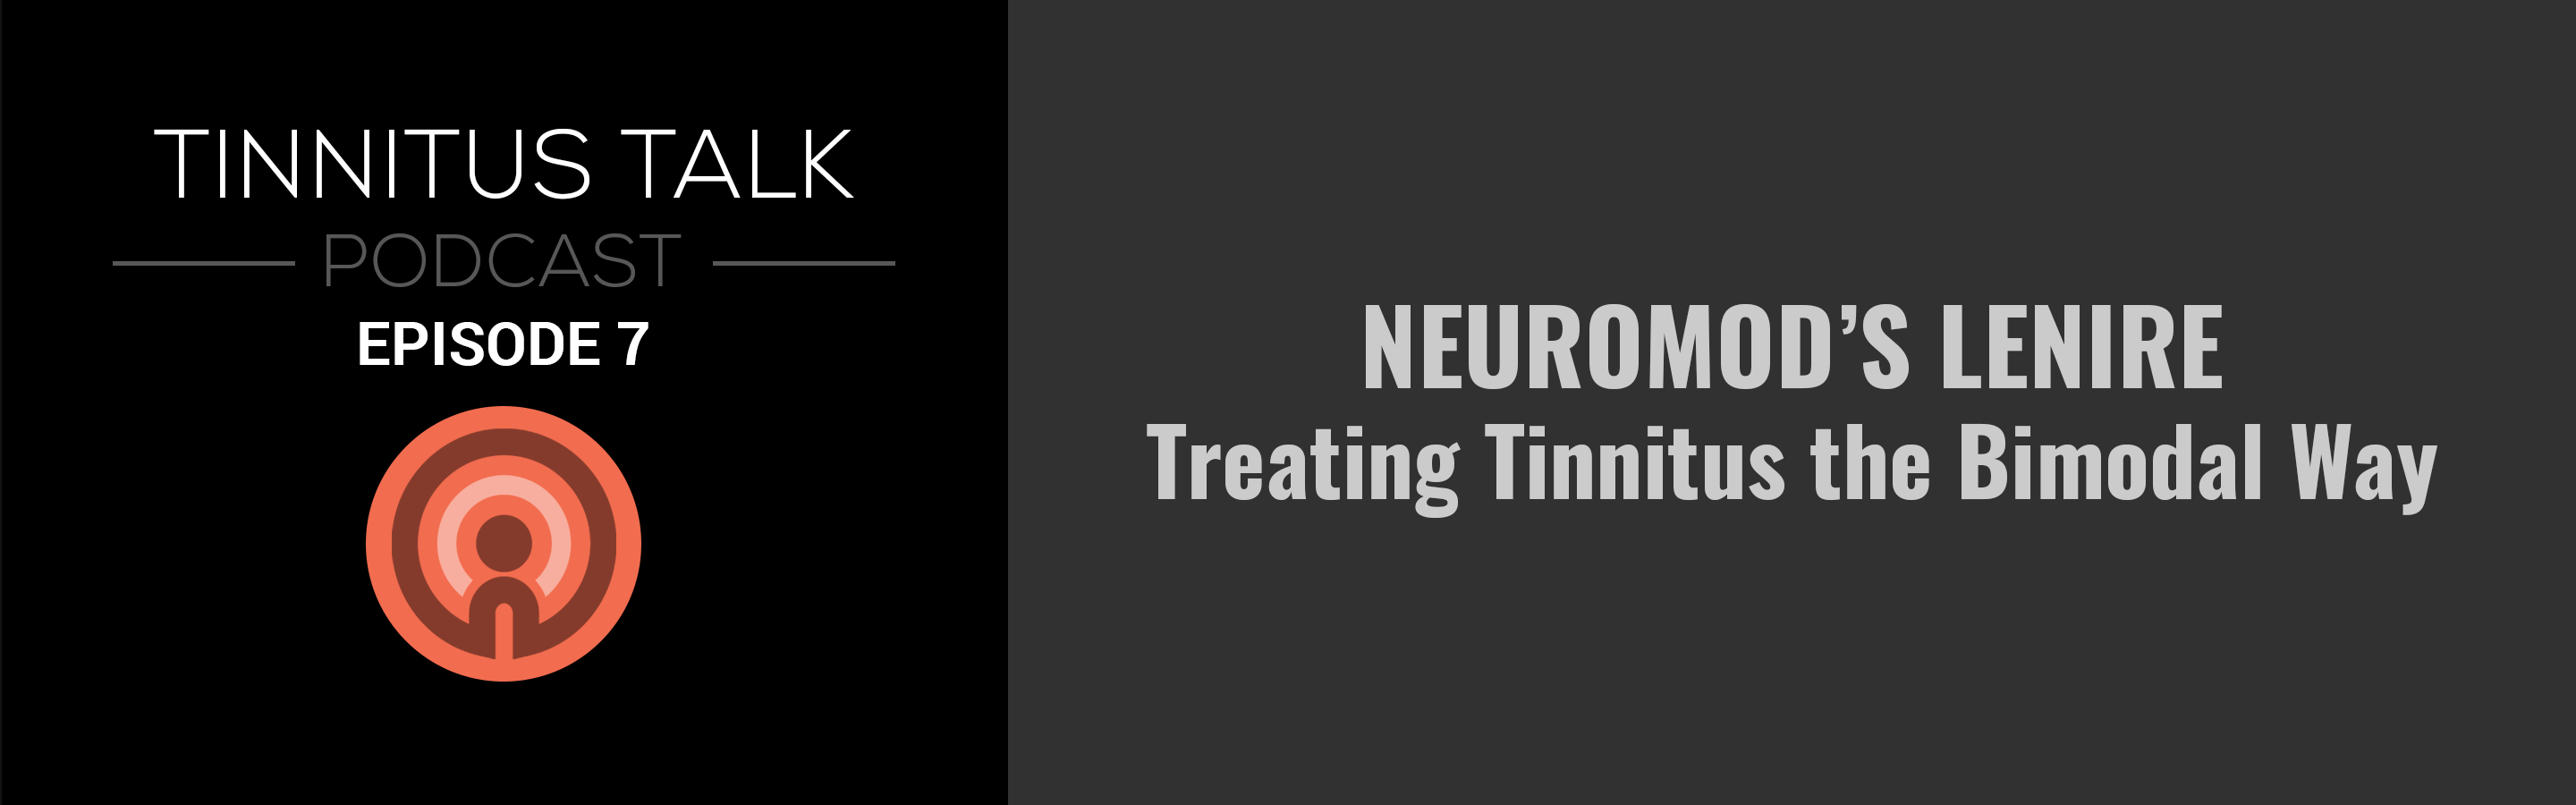 tinnitus-talk-podcast-episode-7-neuromod-lenire.png